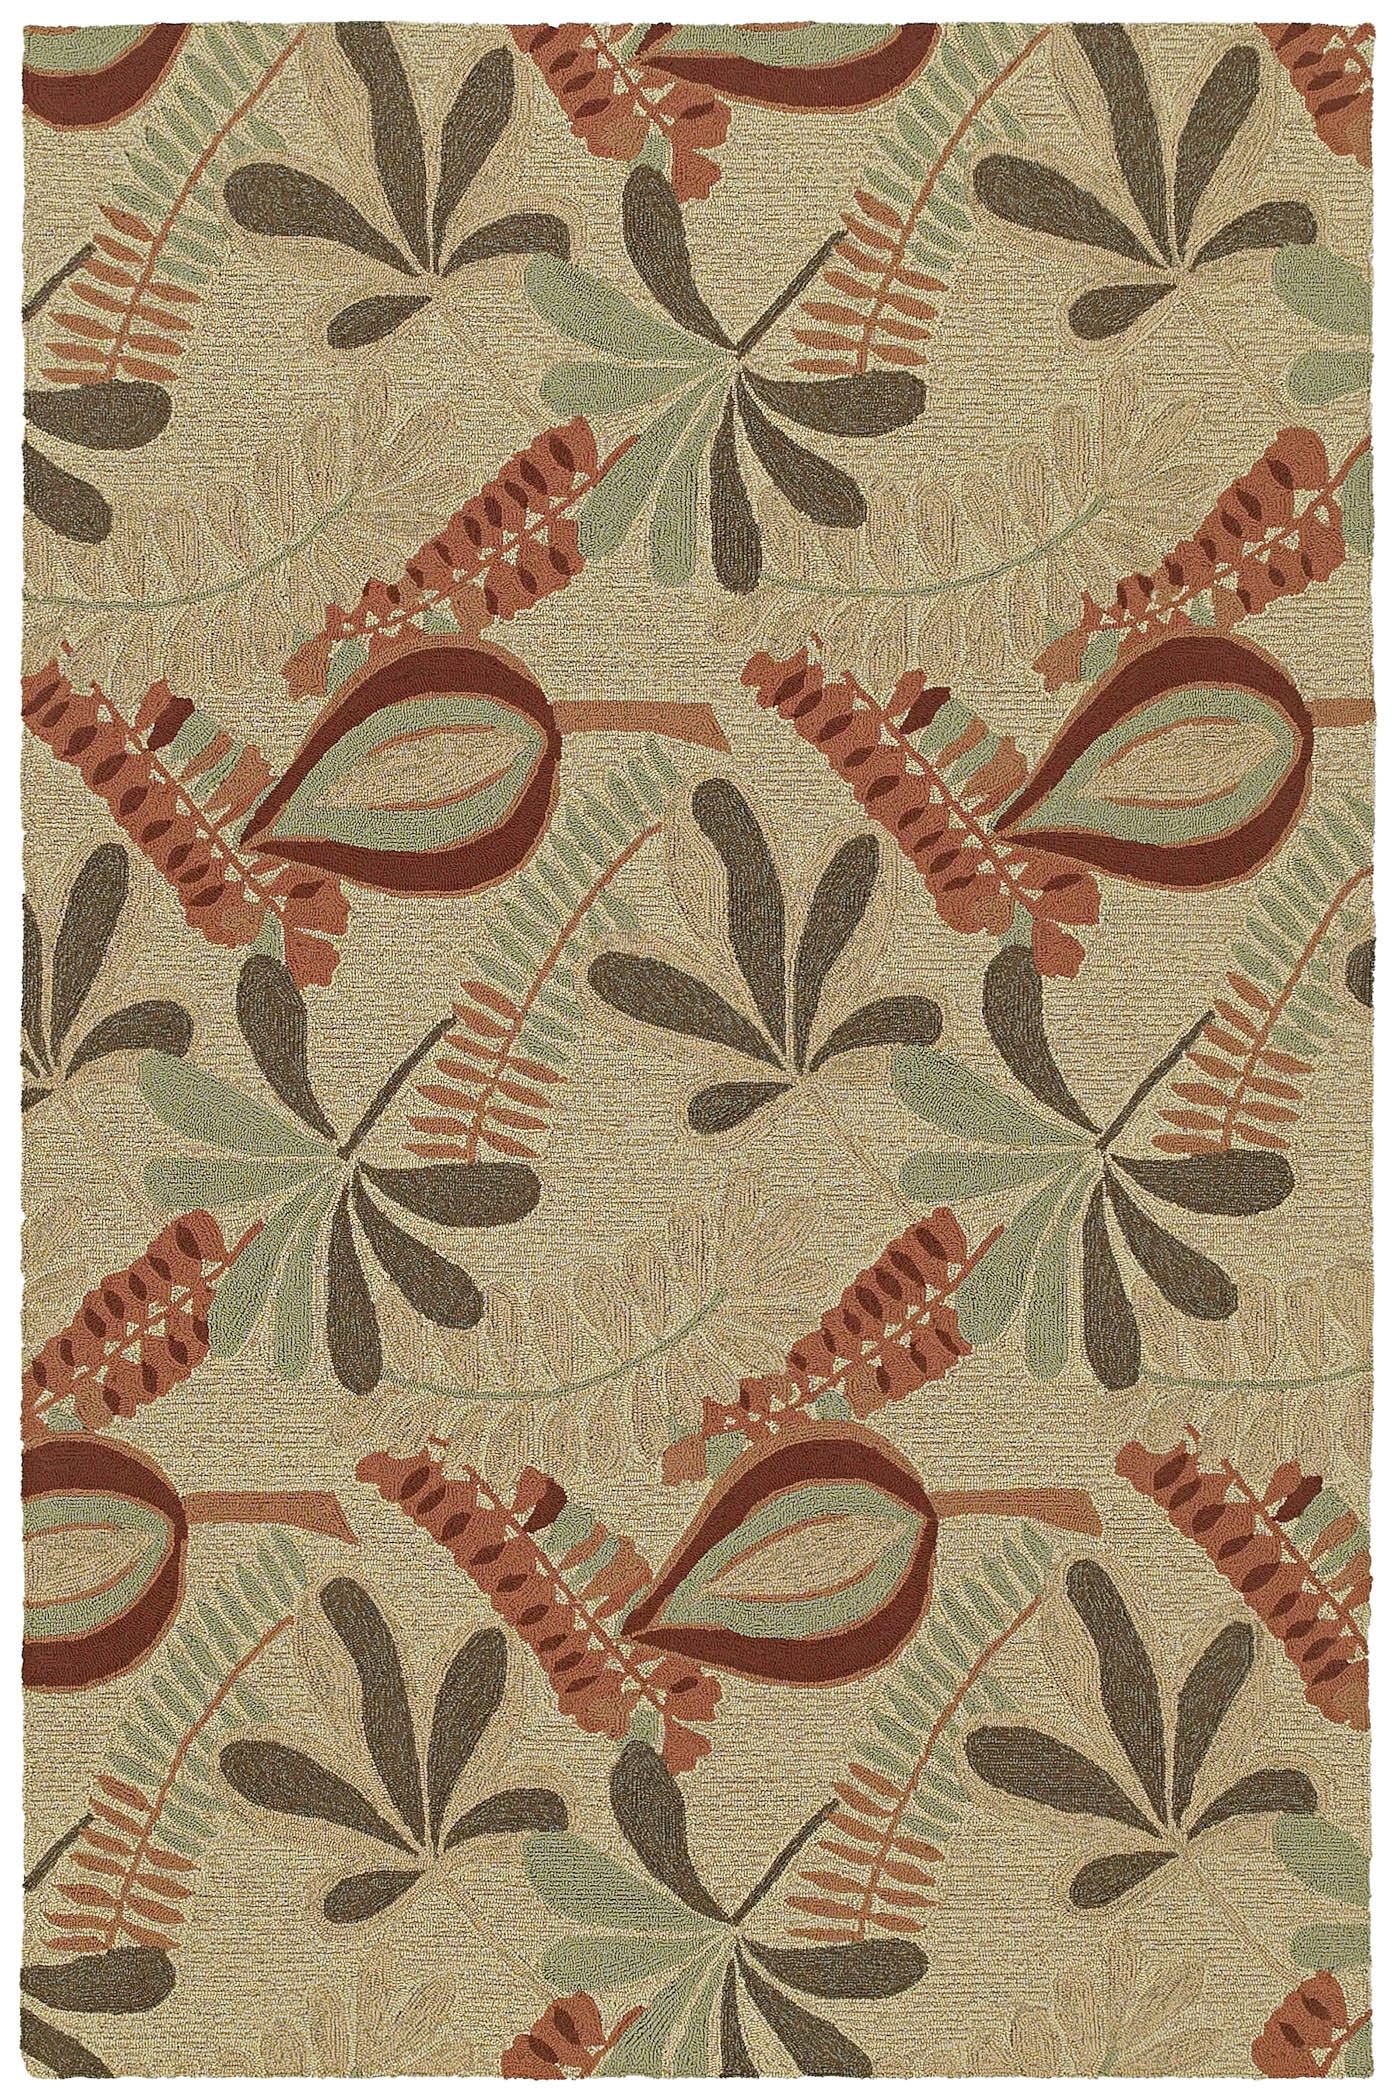 Home & Porch Tybee 2005 42 Linen Outdoor Rug by Kaleen